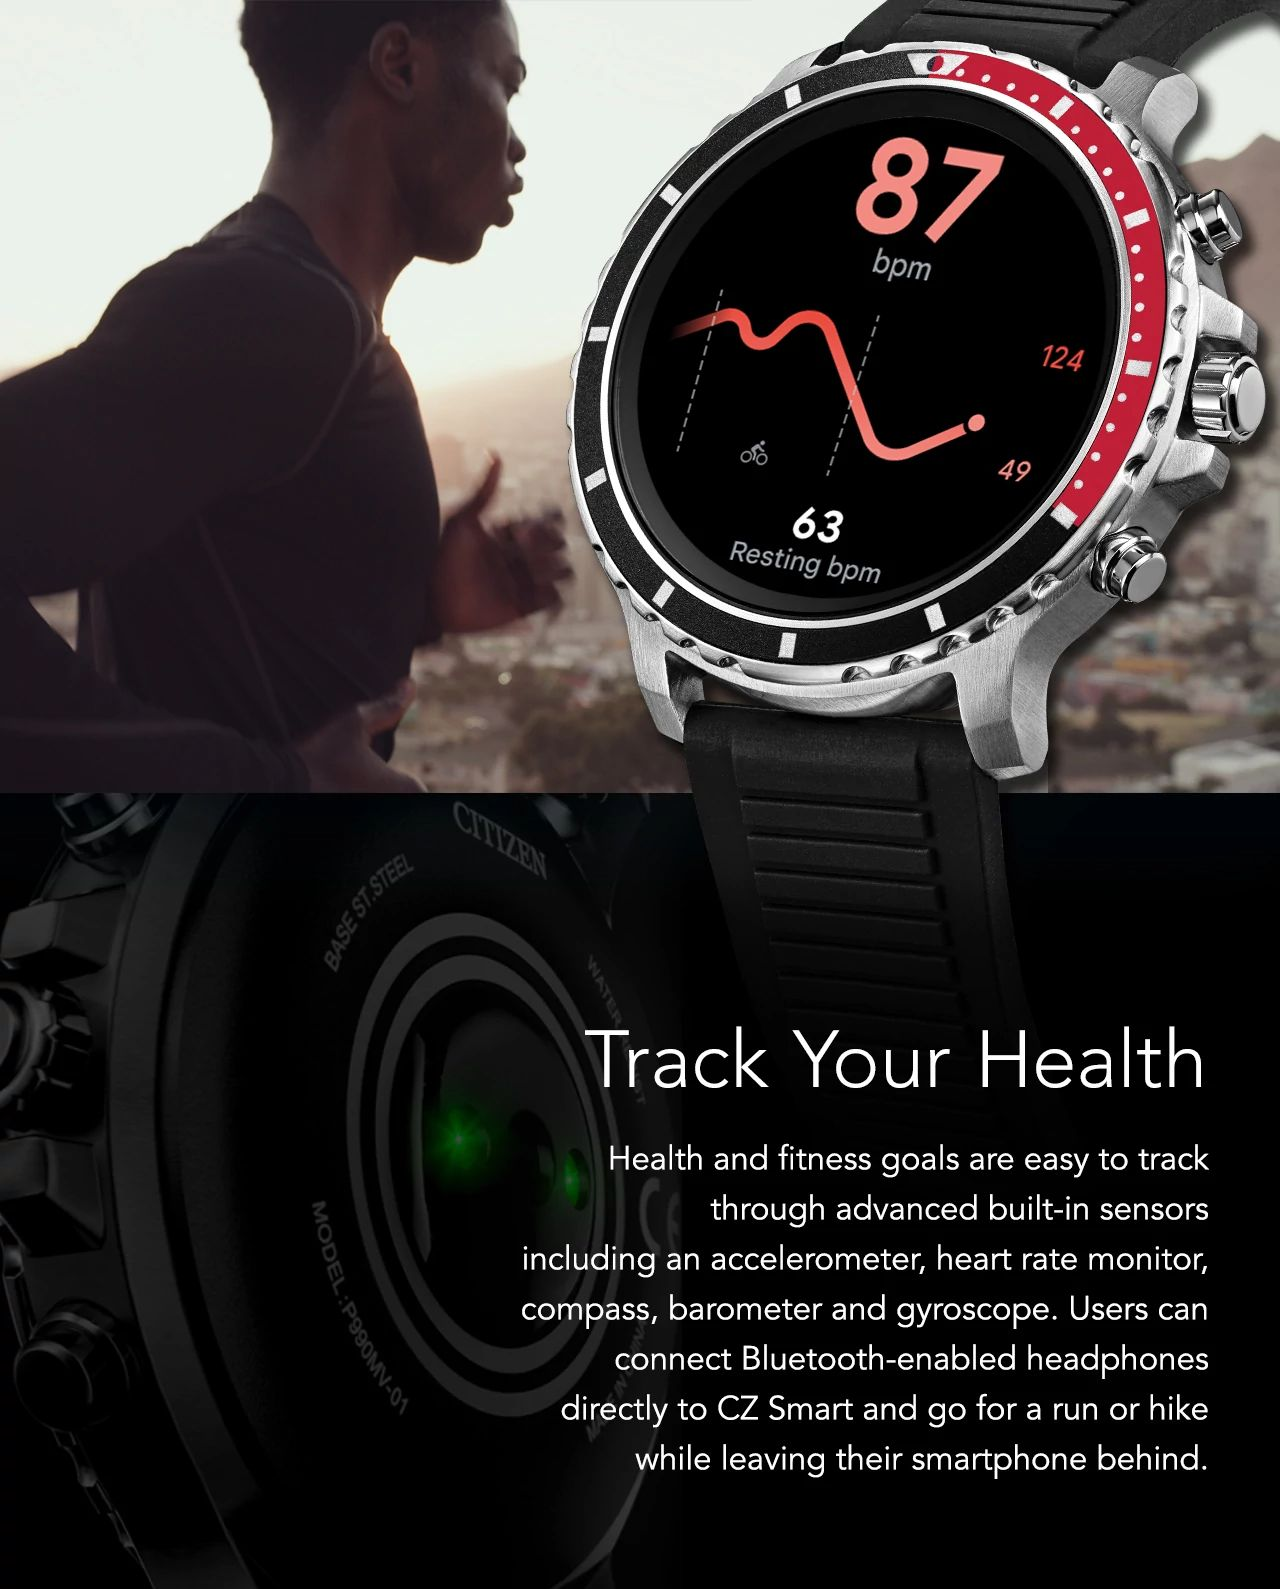 Health and fitness goals are easy to track through advanced built-in sensors including an accelerometer, heart rate monitor, compass, barometer and gyroscope. Users can connect Bluetooth-enabled headphones directly to CZ Smart and go for a run or hike while leaving their smartphone behind.